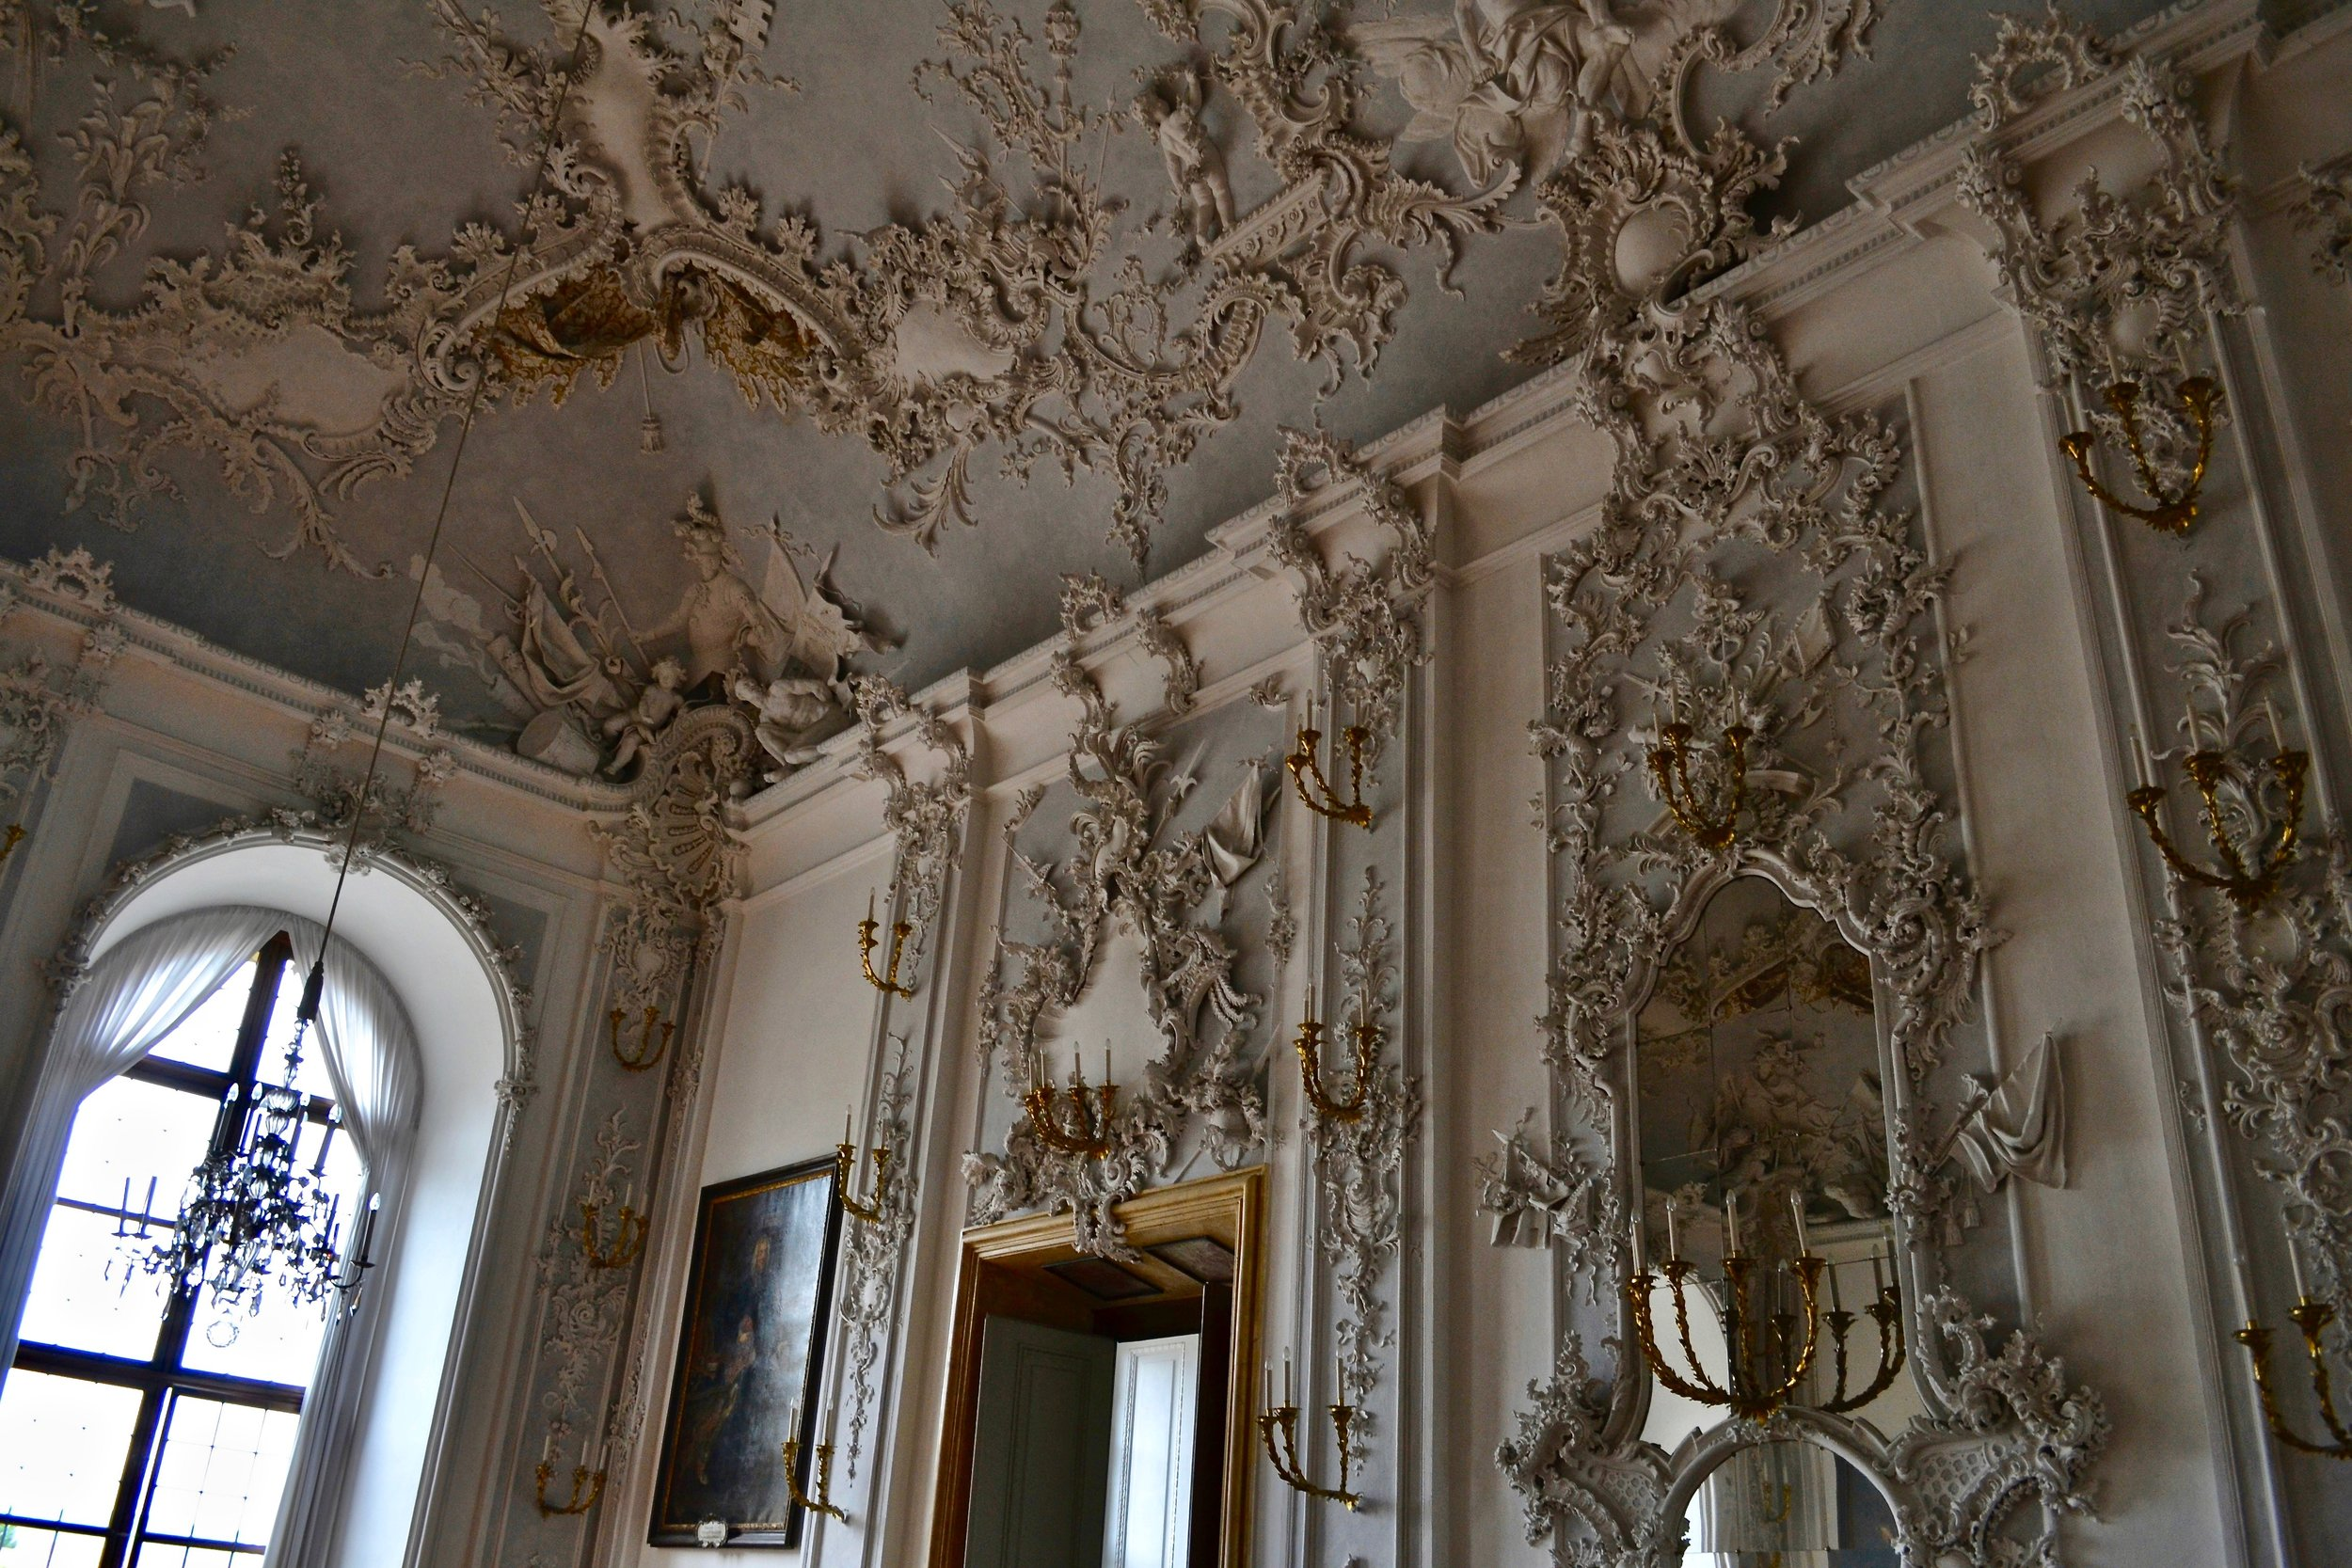 Stucco Work in the Würzburg Residence